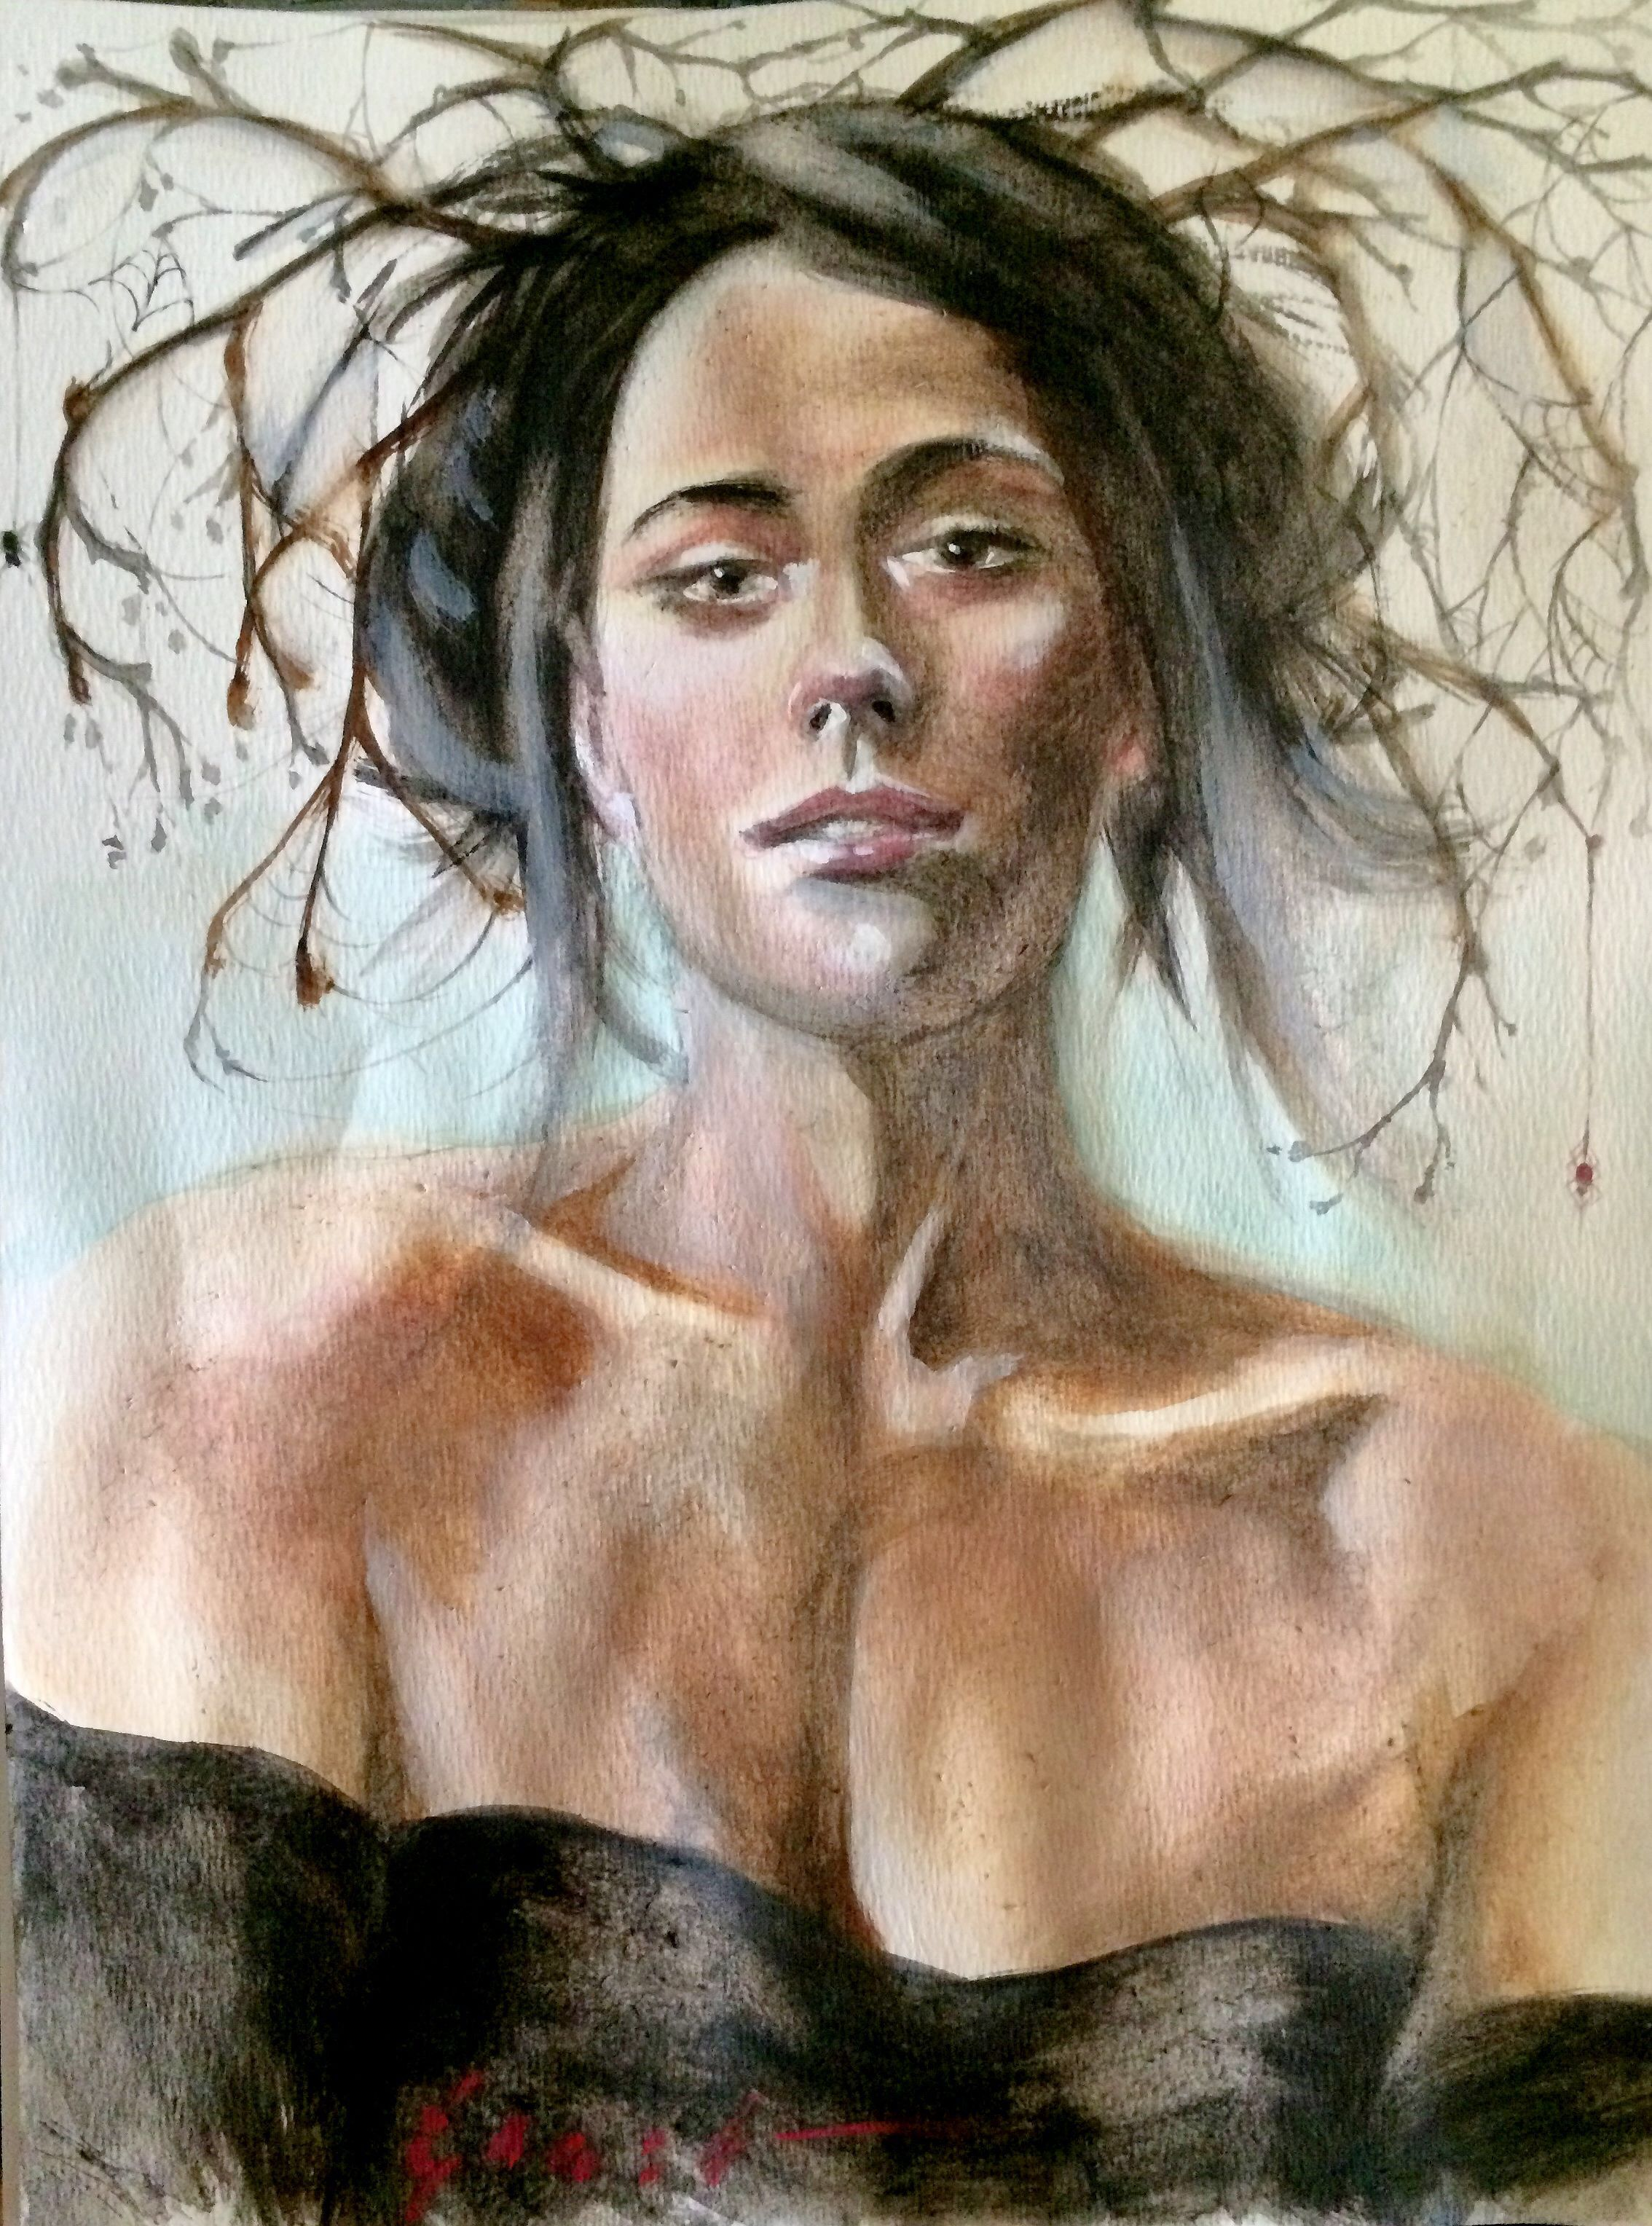 #Painting #sketch in #watercolor and #Gouache - Nathan Ernst  #portrait #woman